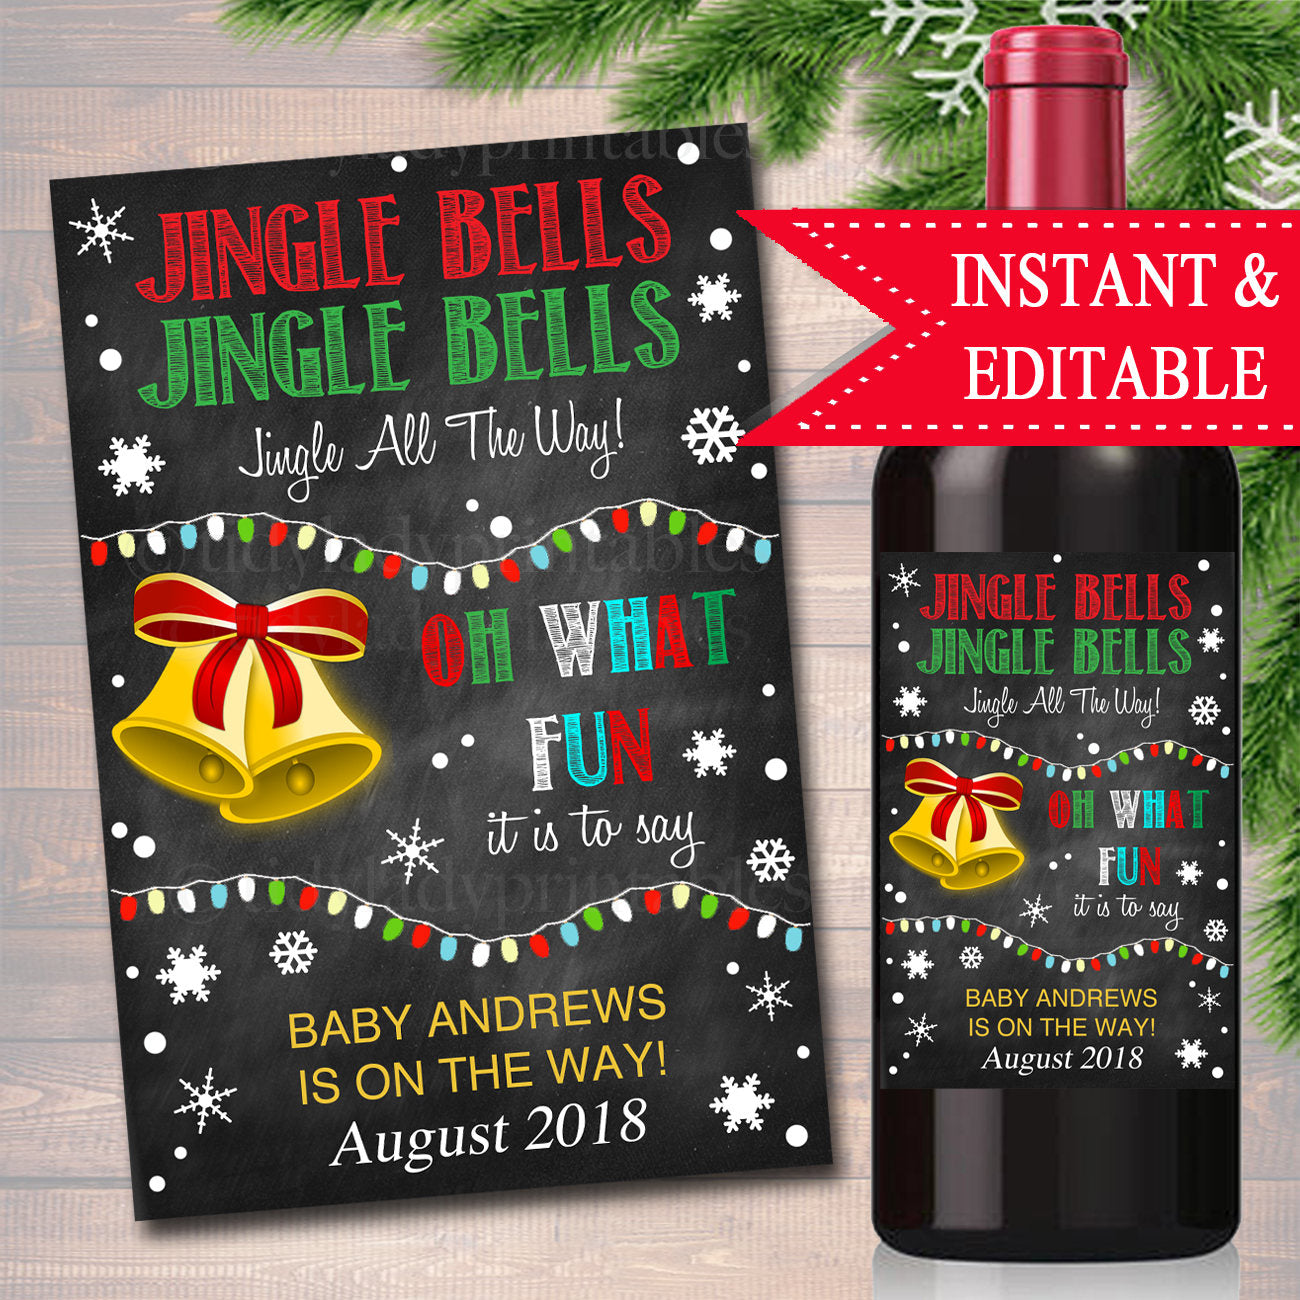 INSTANT DOWNLOAD Editable Christmas Pregnancy Announcement Wine Label Printable Wine Label Holiday Trading Silent Nights For Bundle of Joy